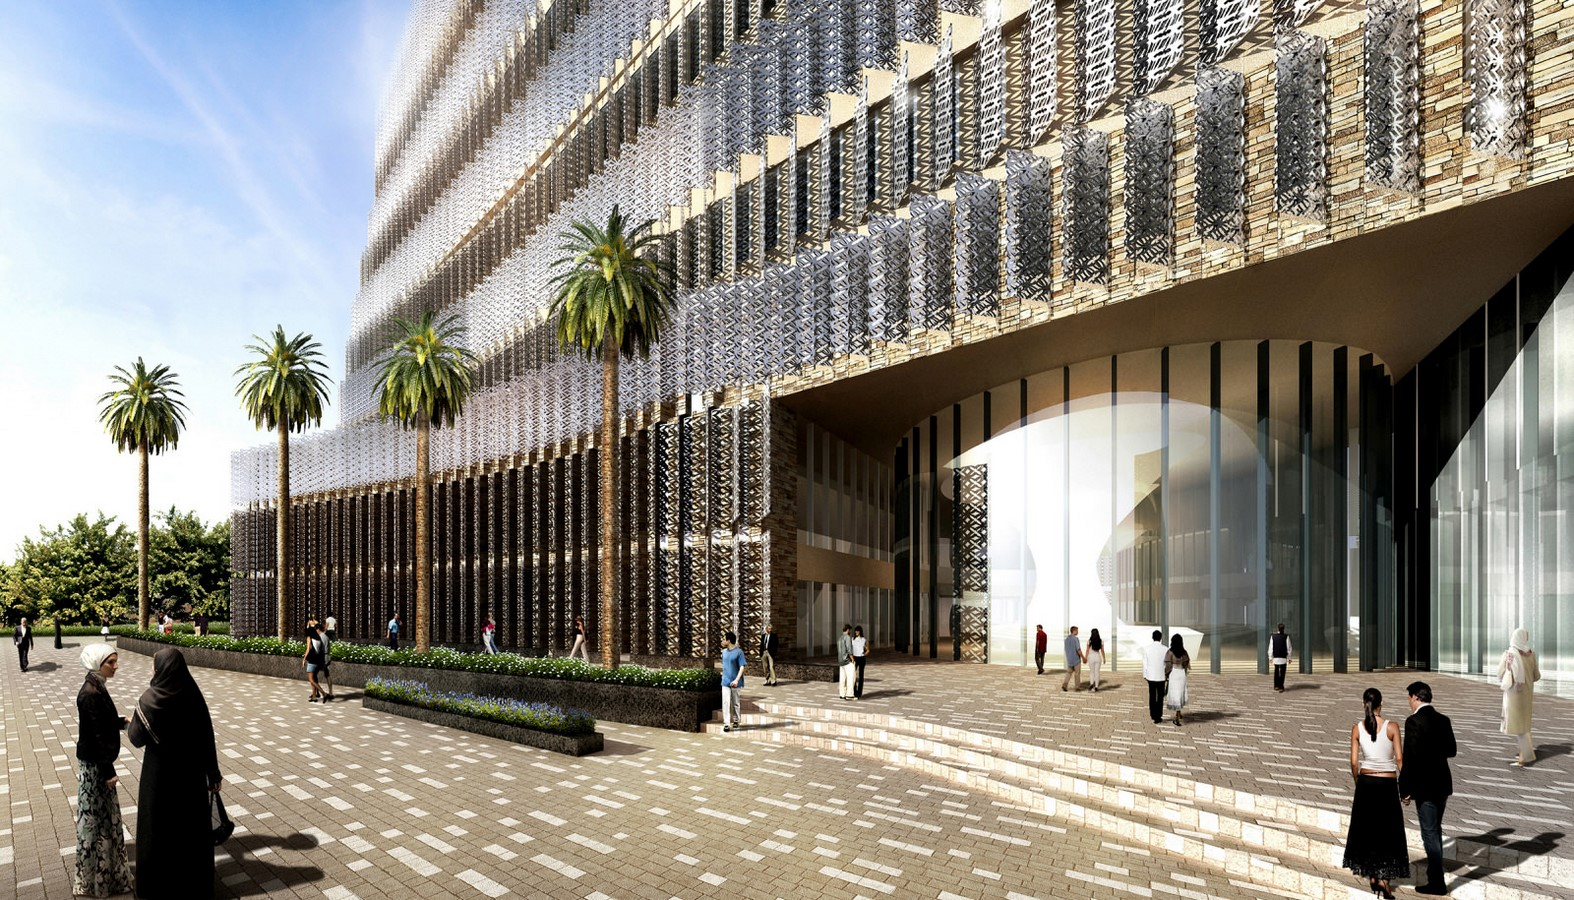 Hill county SEZ office complex in Hyderabad by SOM architects - Sheet1